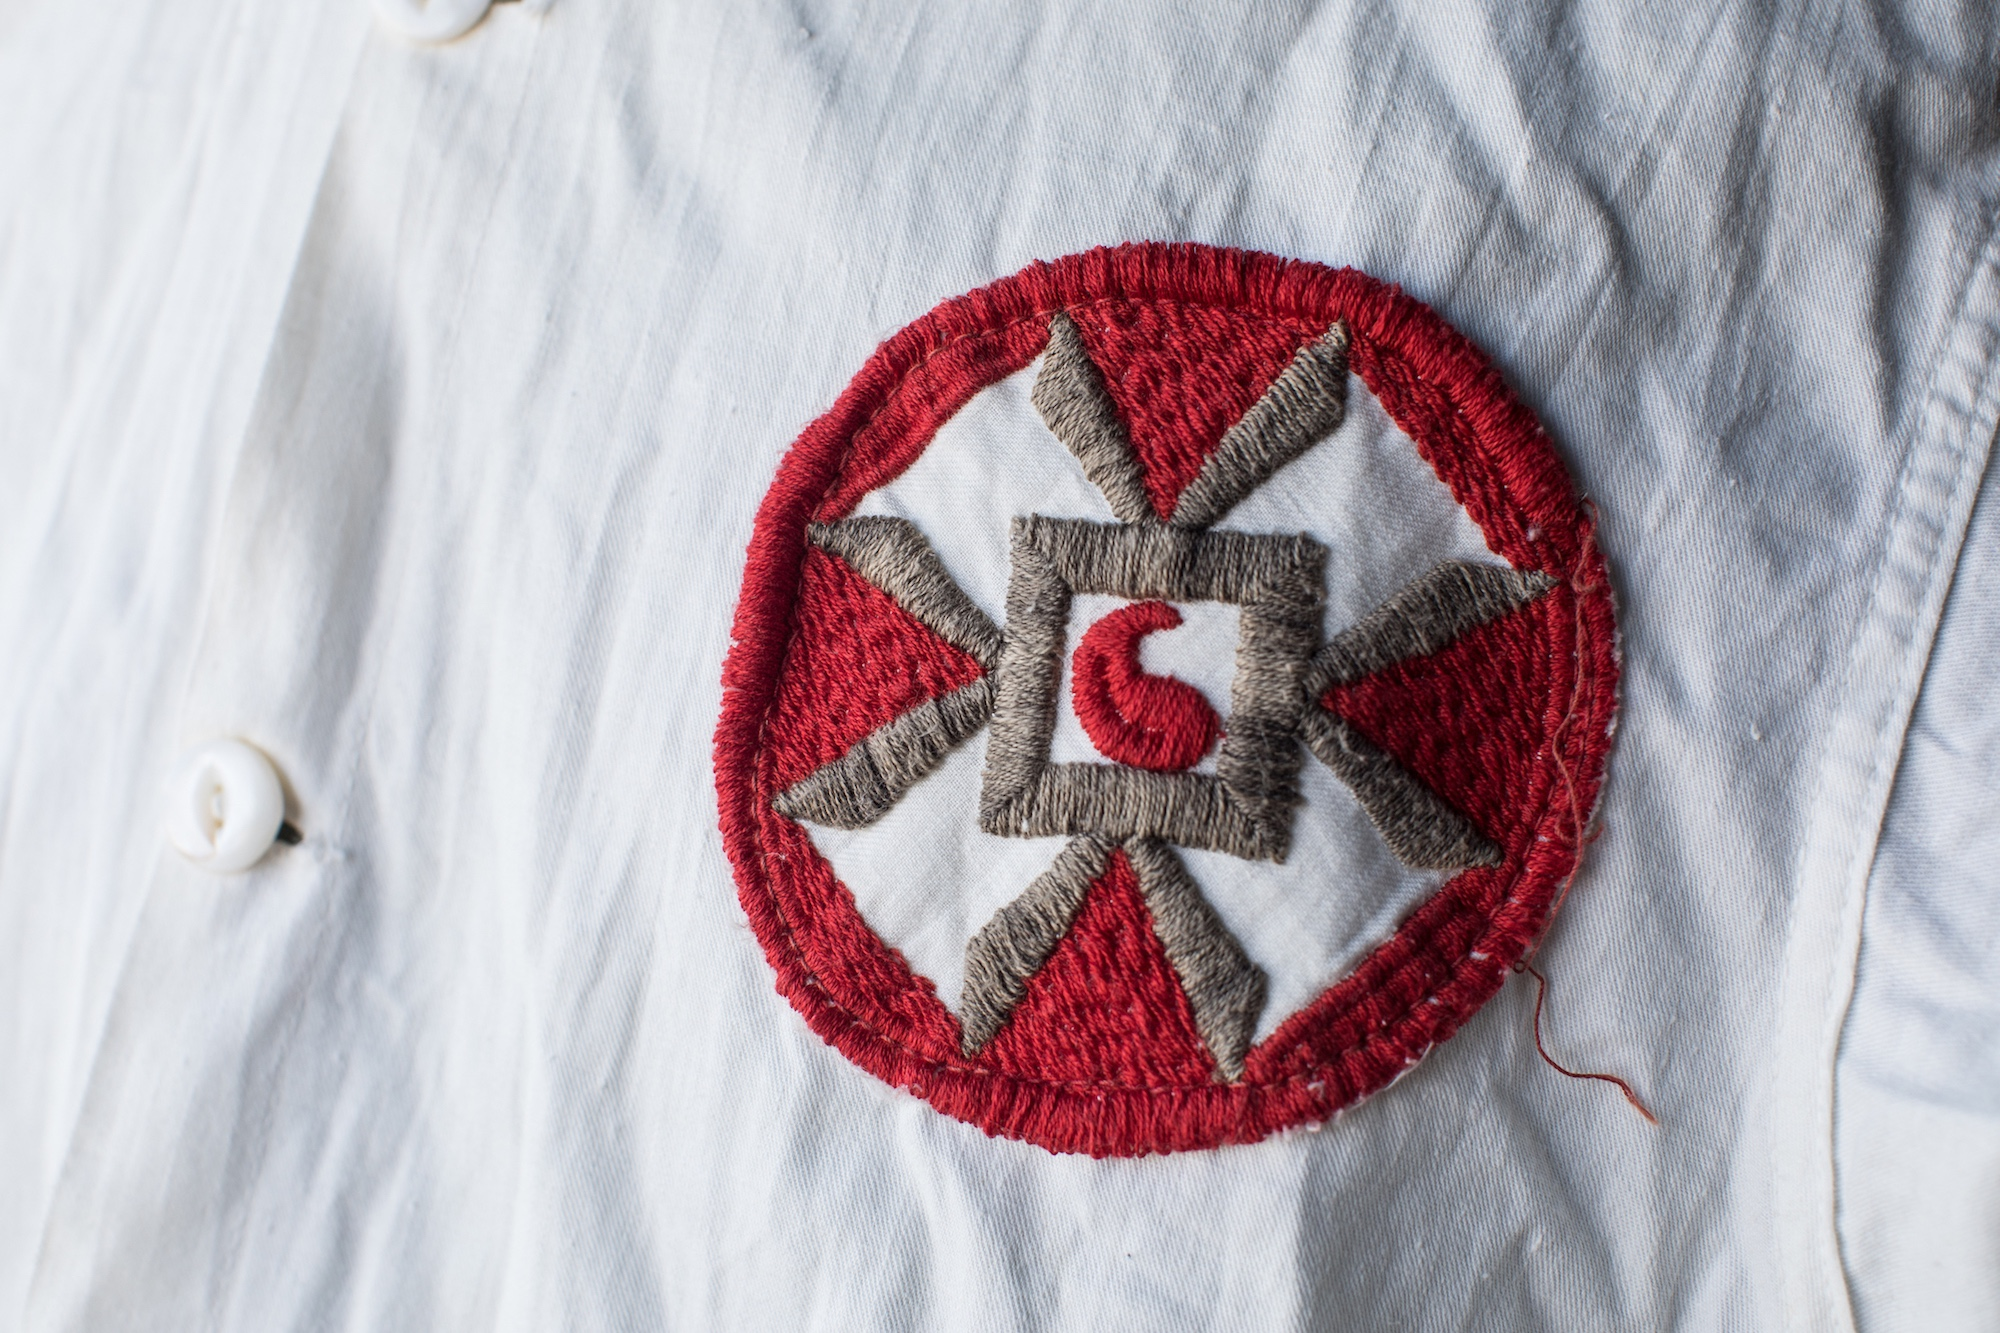 Close-up of a badge sewn into an old Ku Klux Klan robe